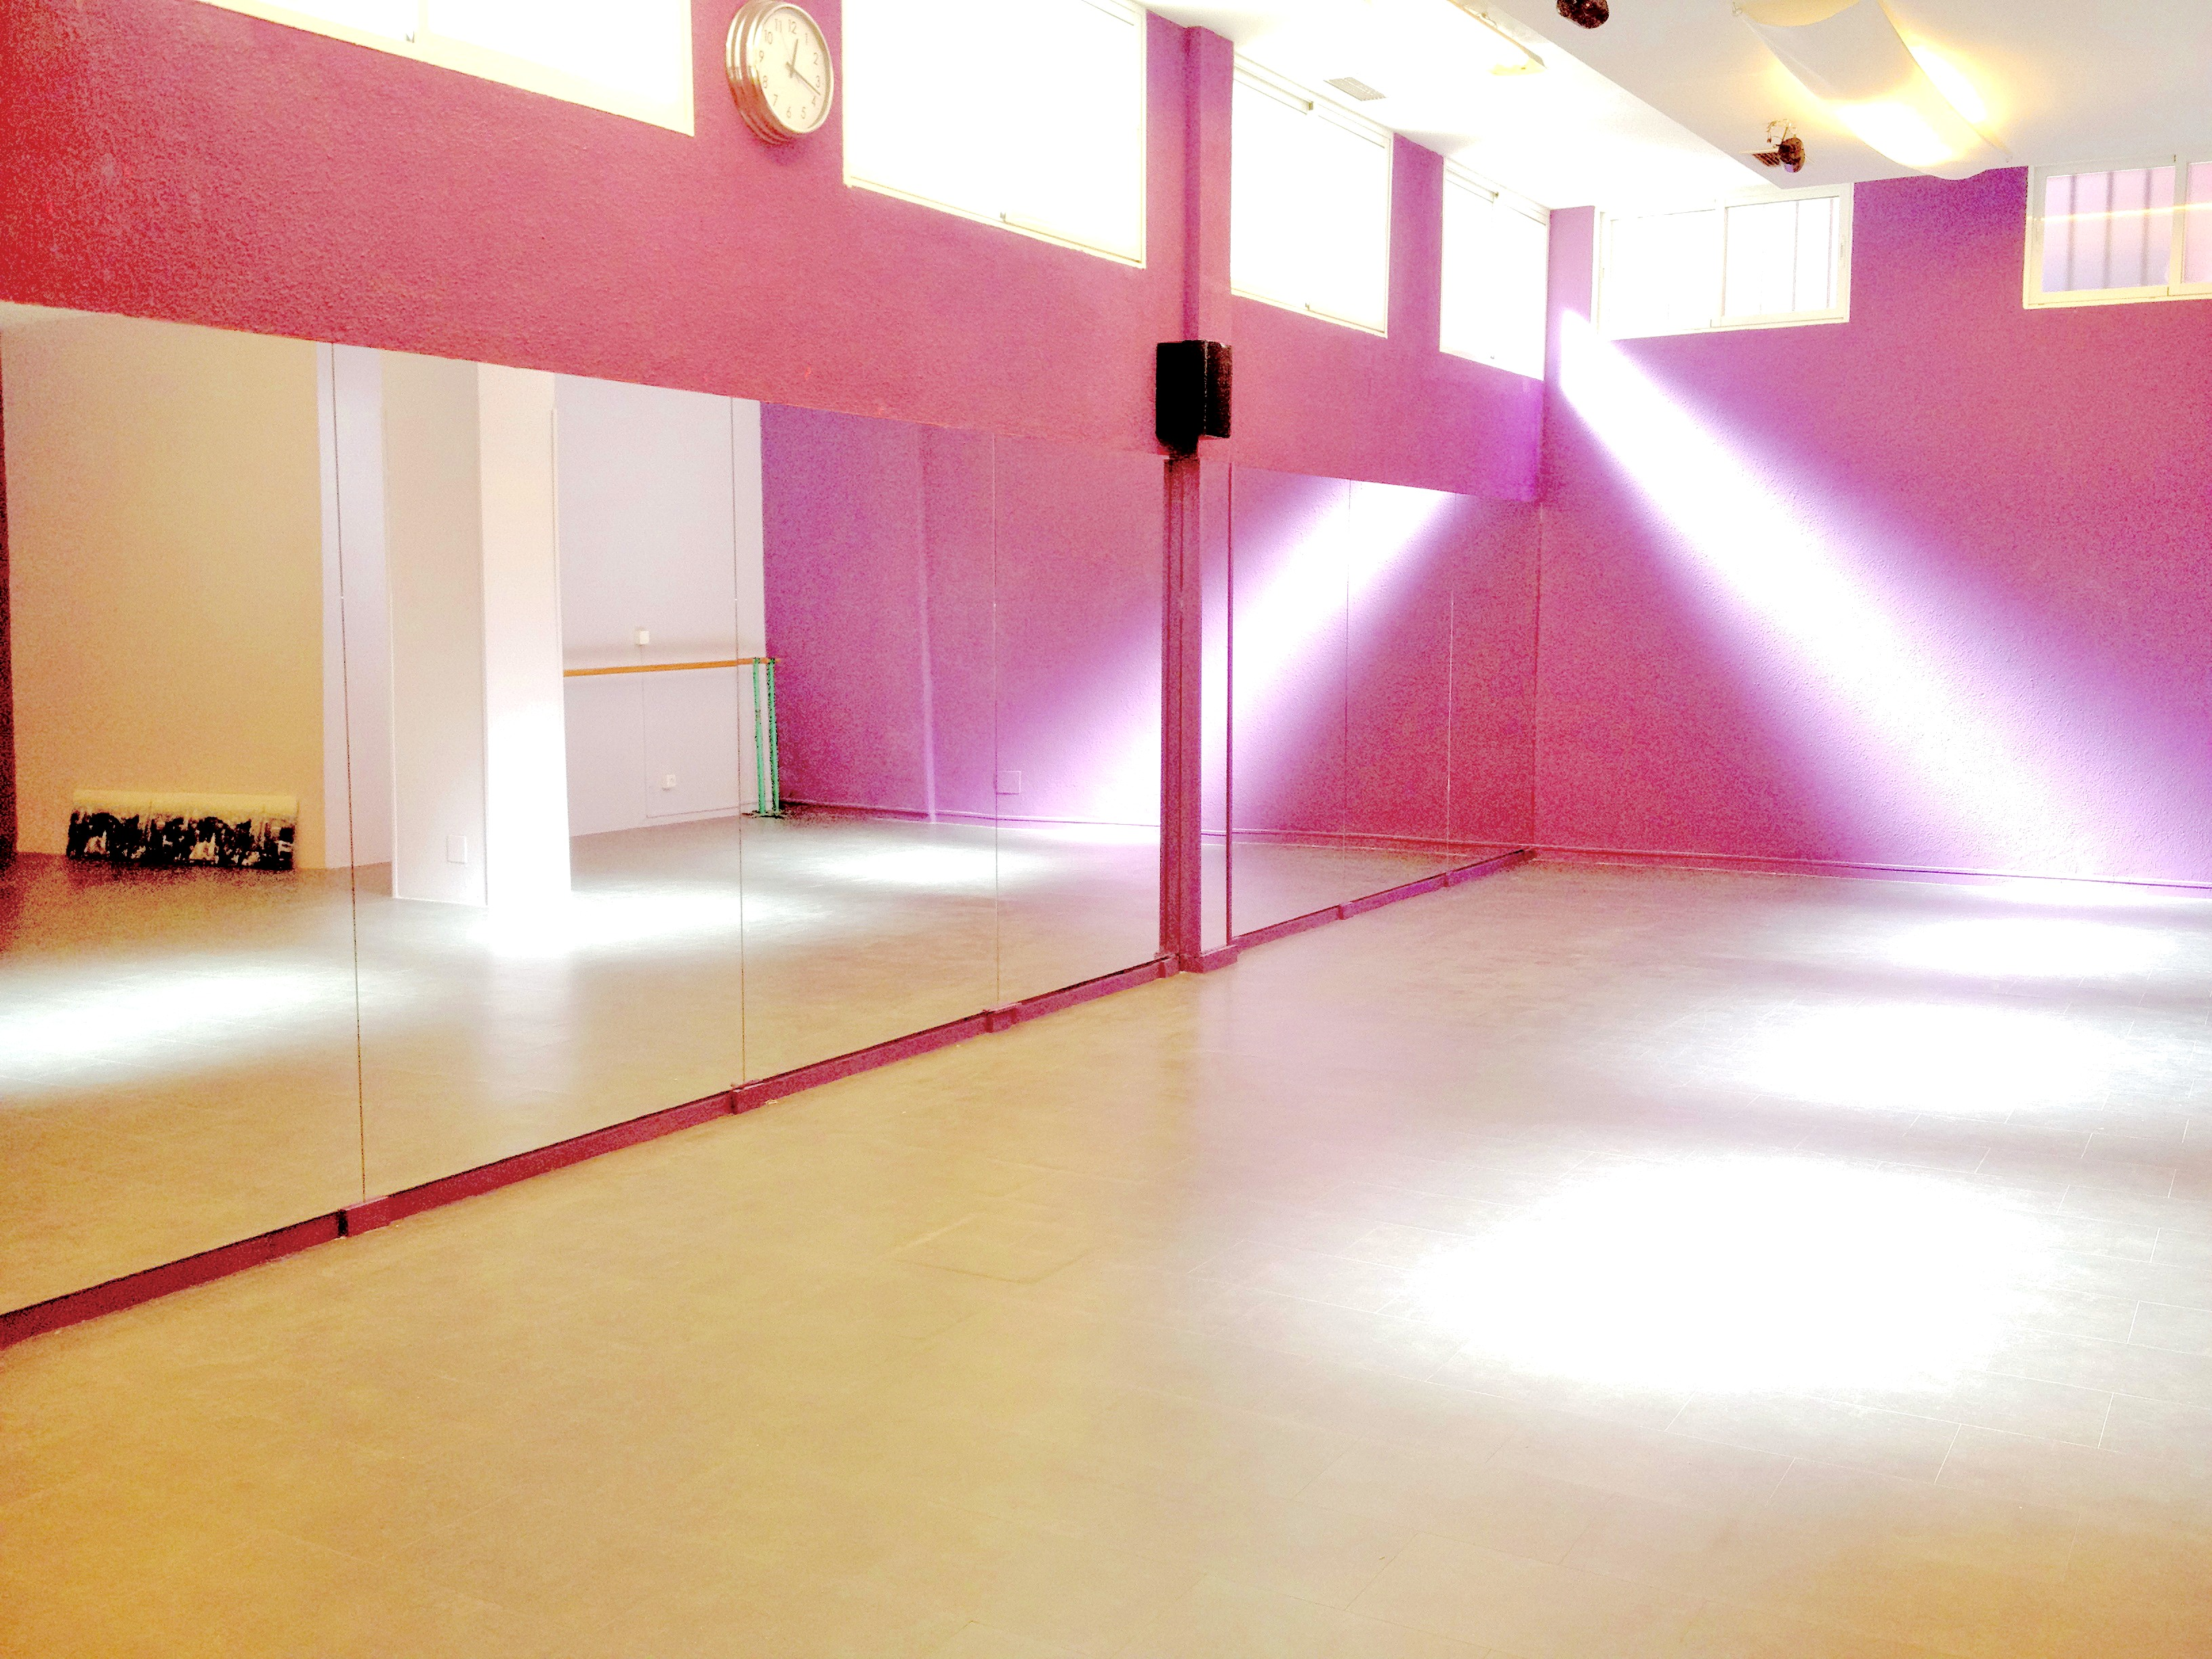 18 escuelas de baile en barcelona para que no pares de moverte for Decoracion de interiores estudiar